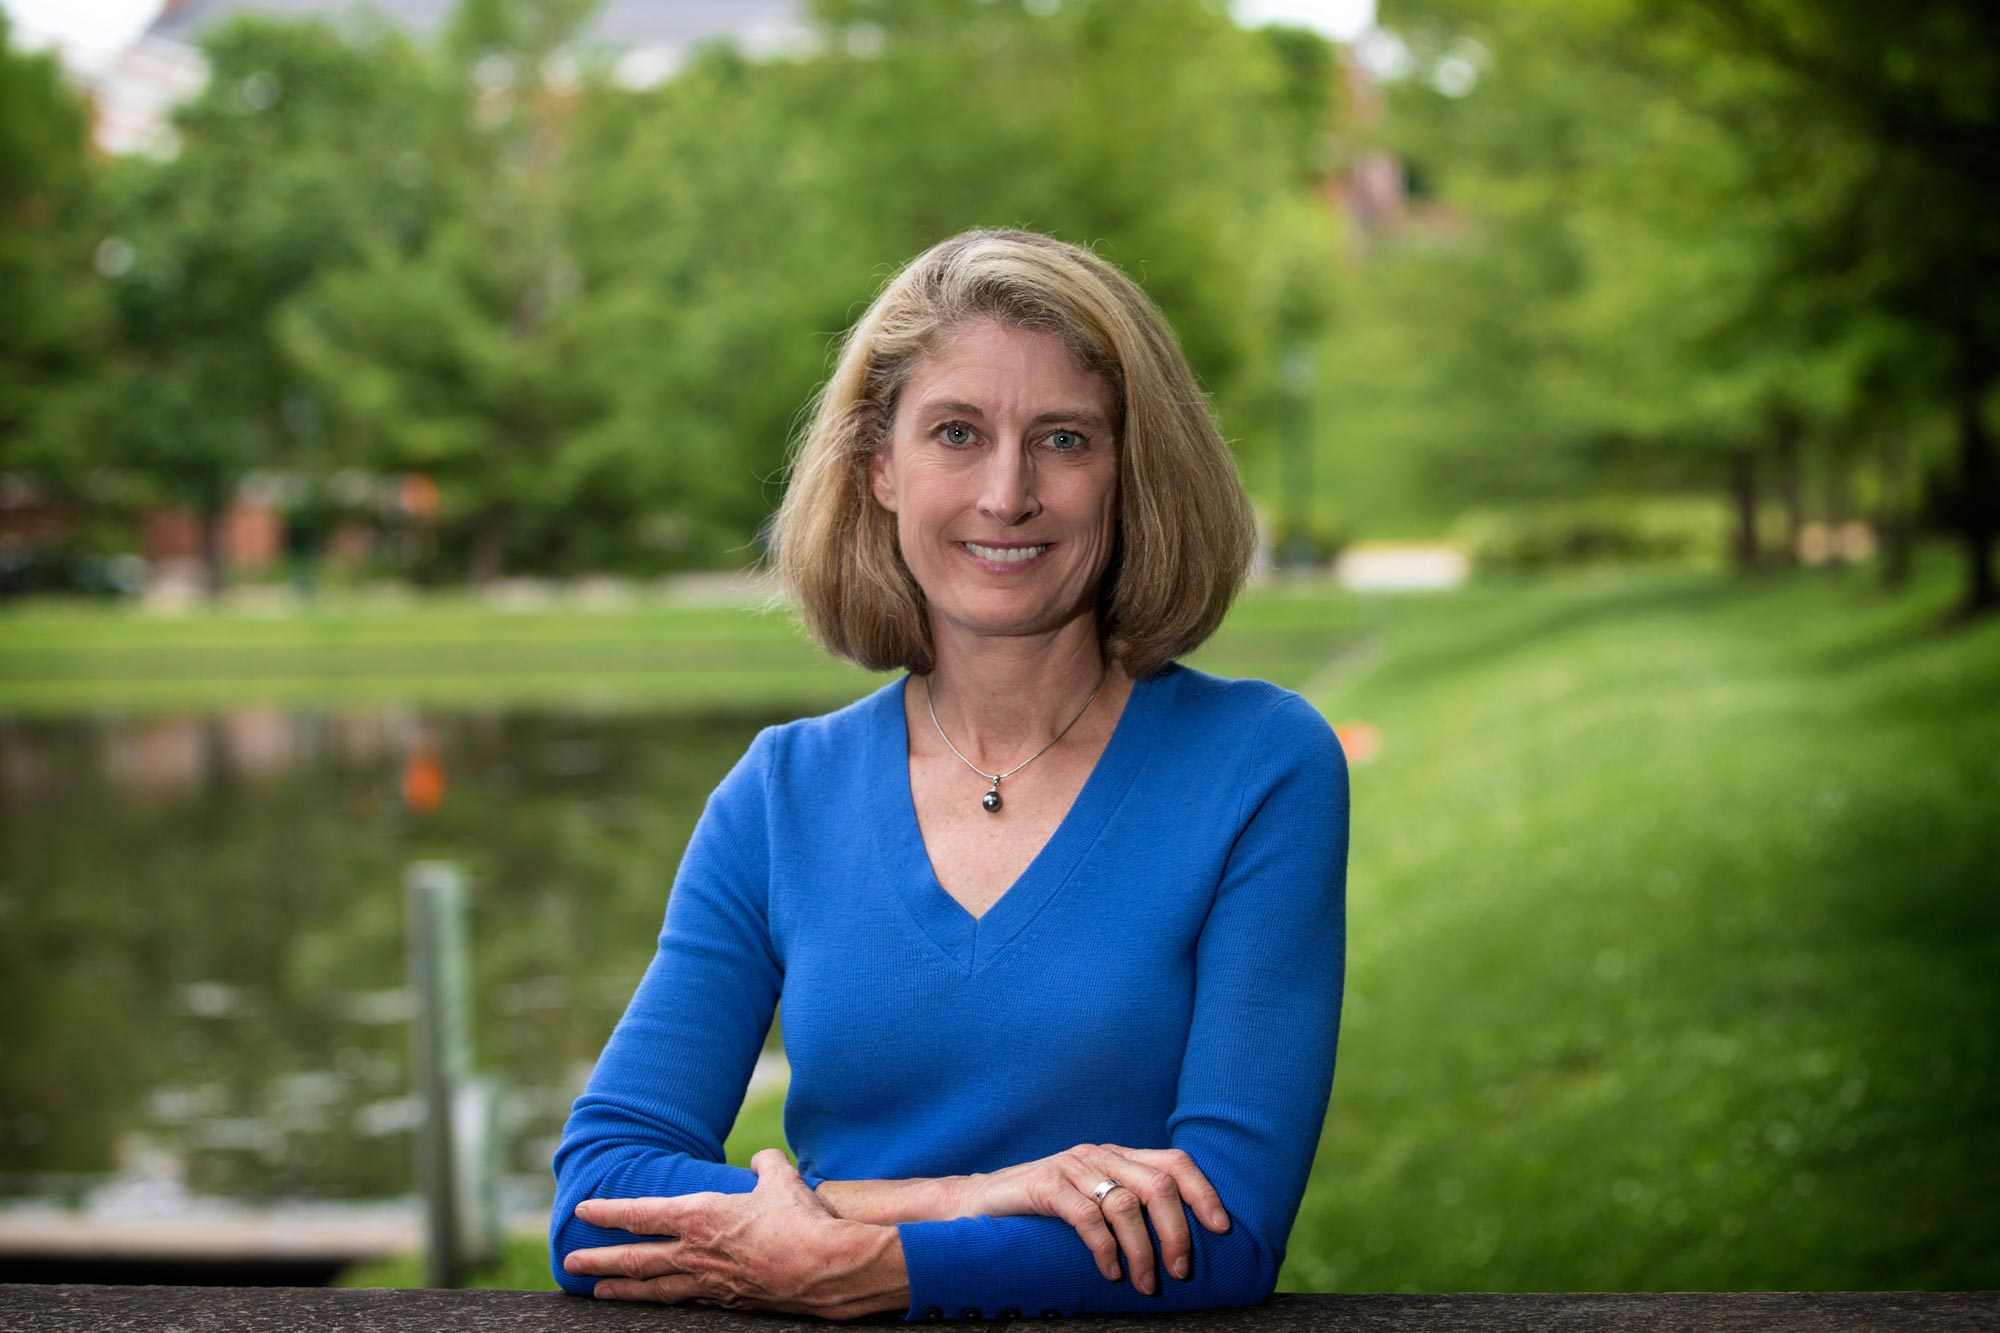 Karen McGlathery directs the Environmental Resilience Institute, which is providing the seed grants to study the aftermath of storms and hurricanes.